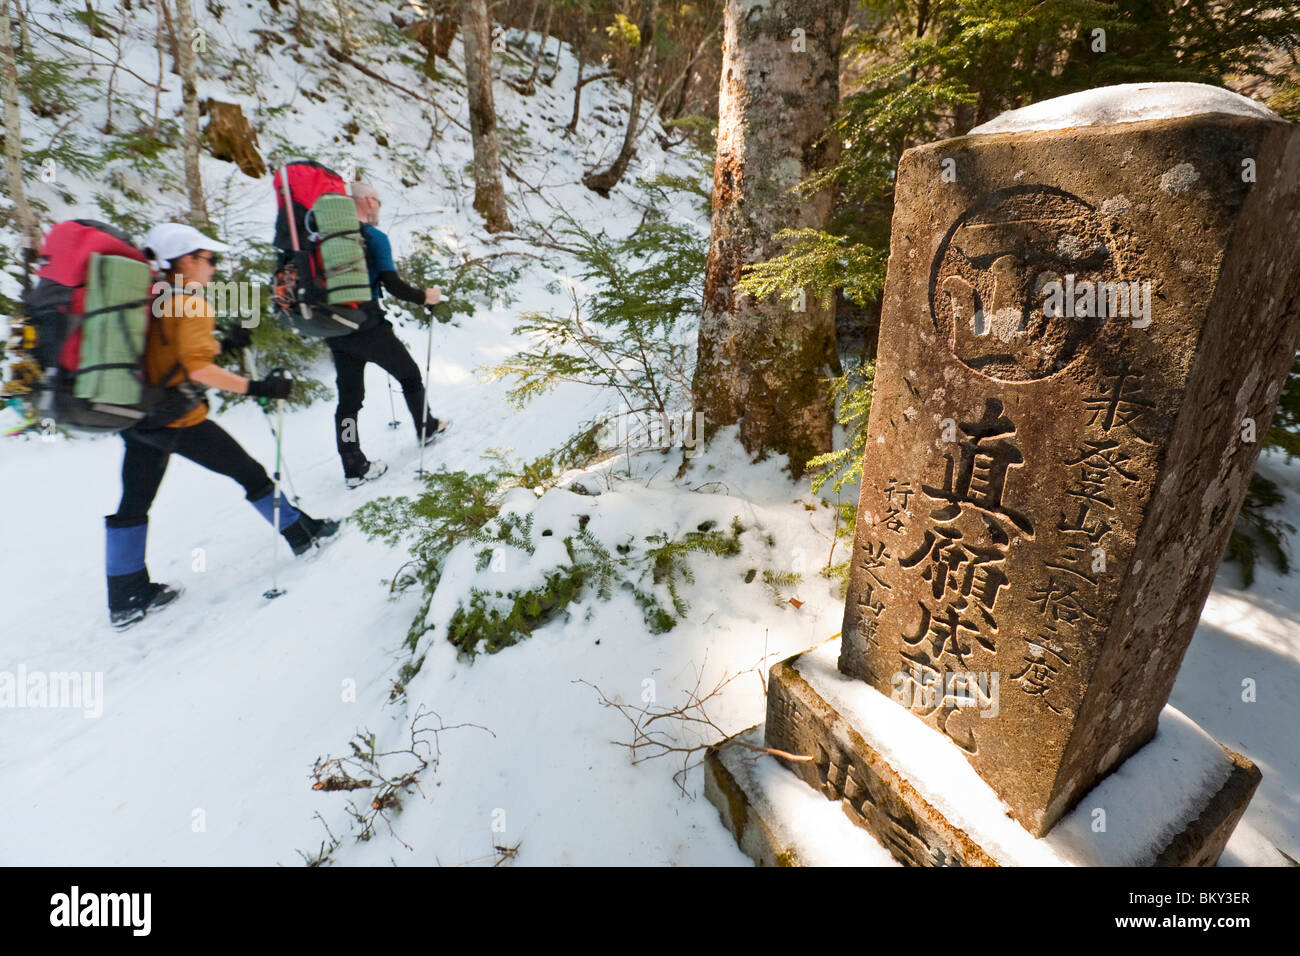 Two people are hiking on a trail next to a pillar with Japanese characters on it in Mount Fuji National Park, Honshu, - Stock Image